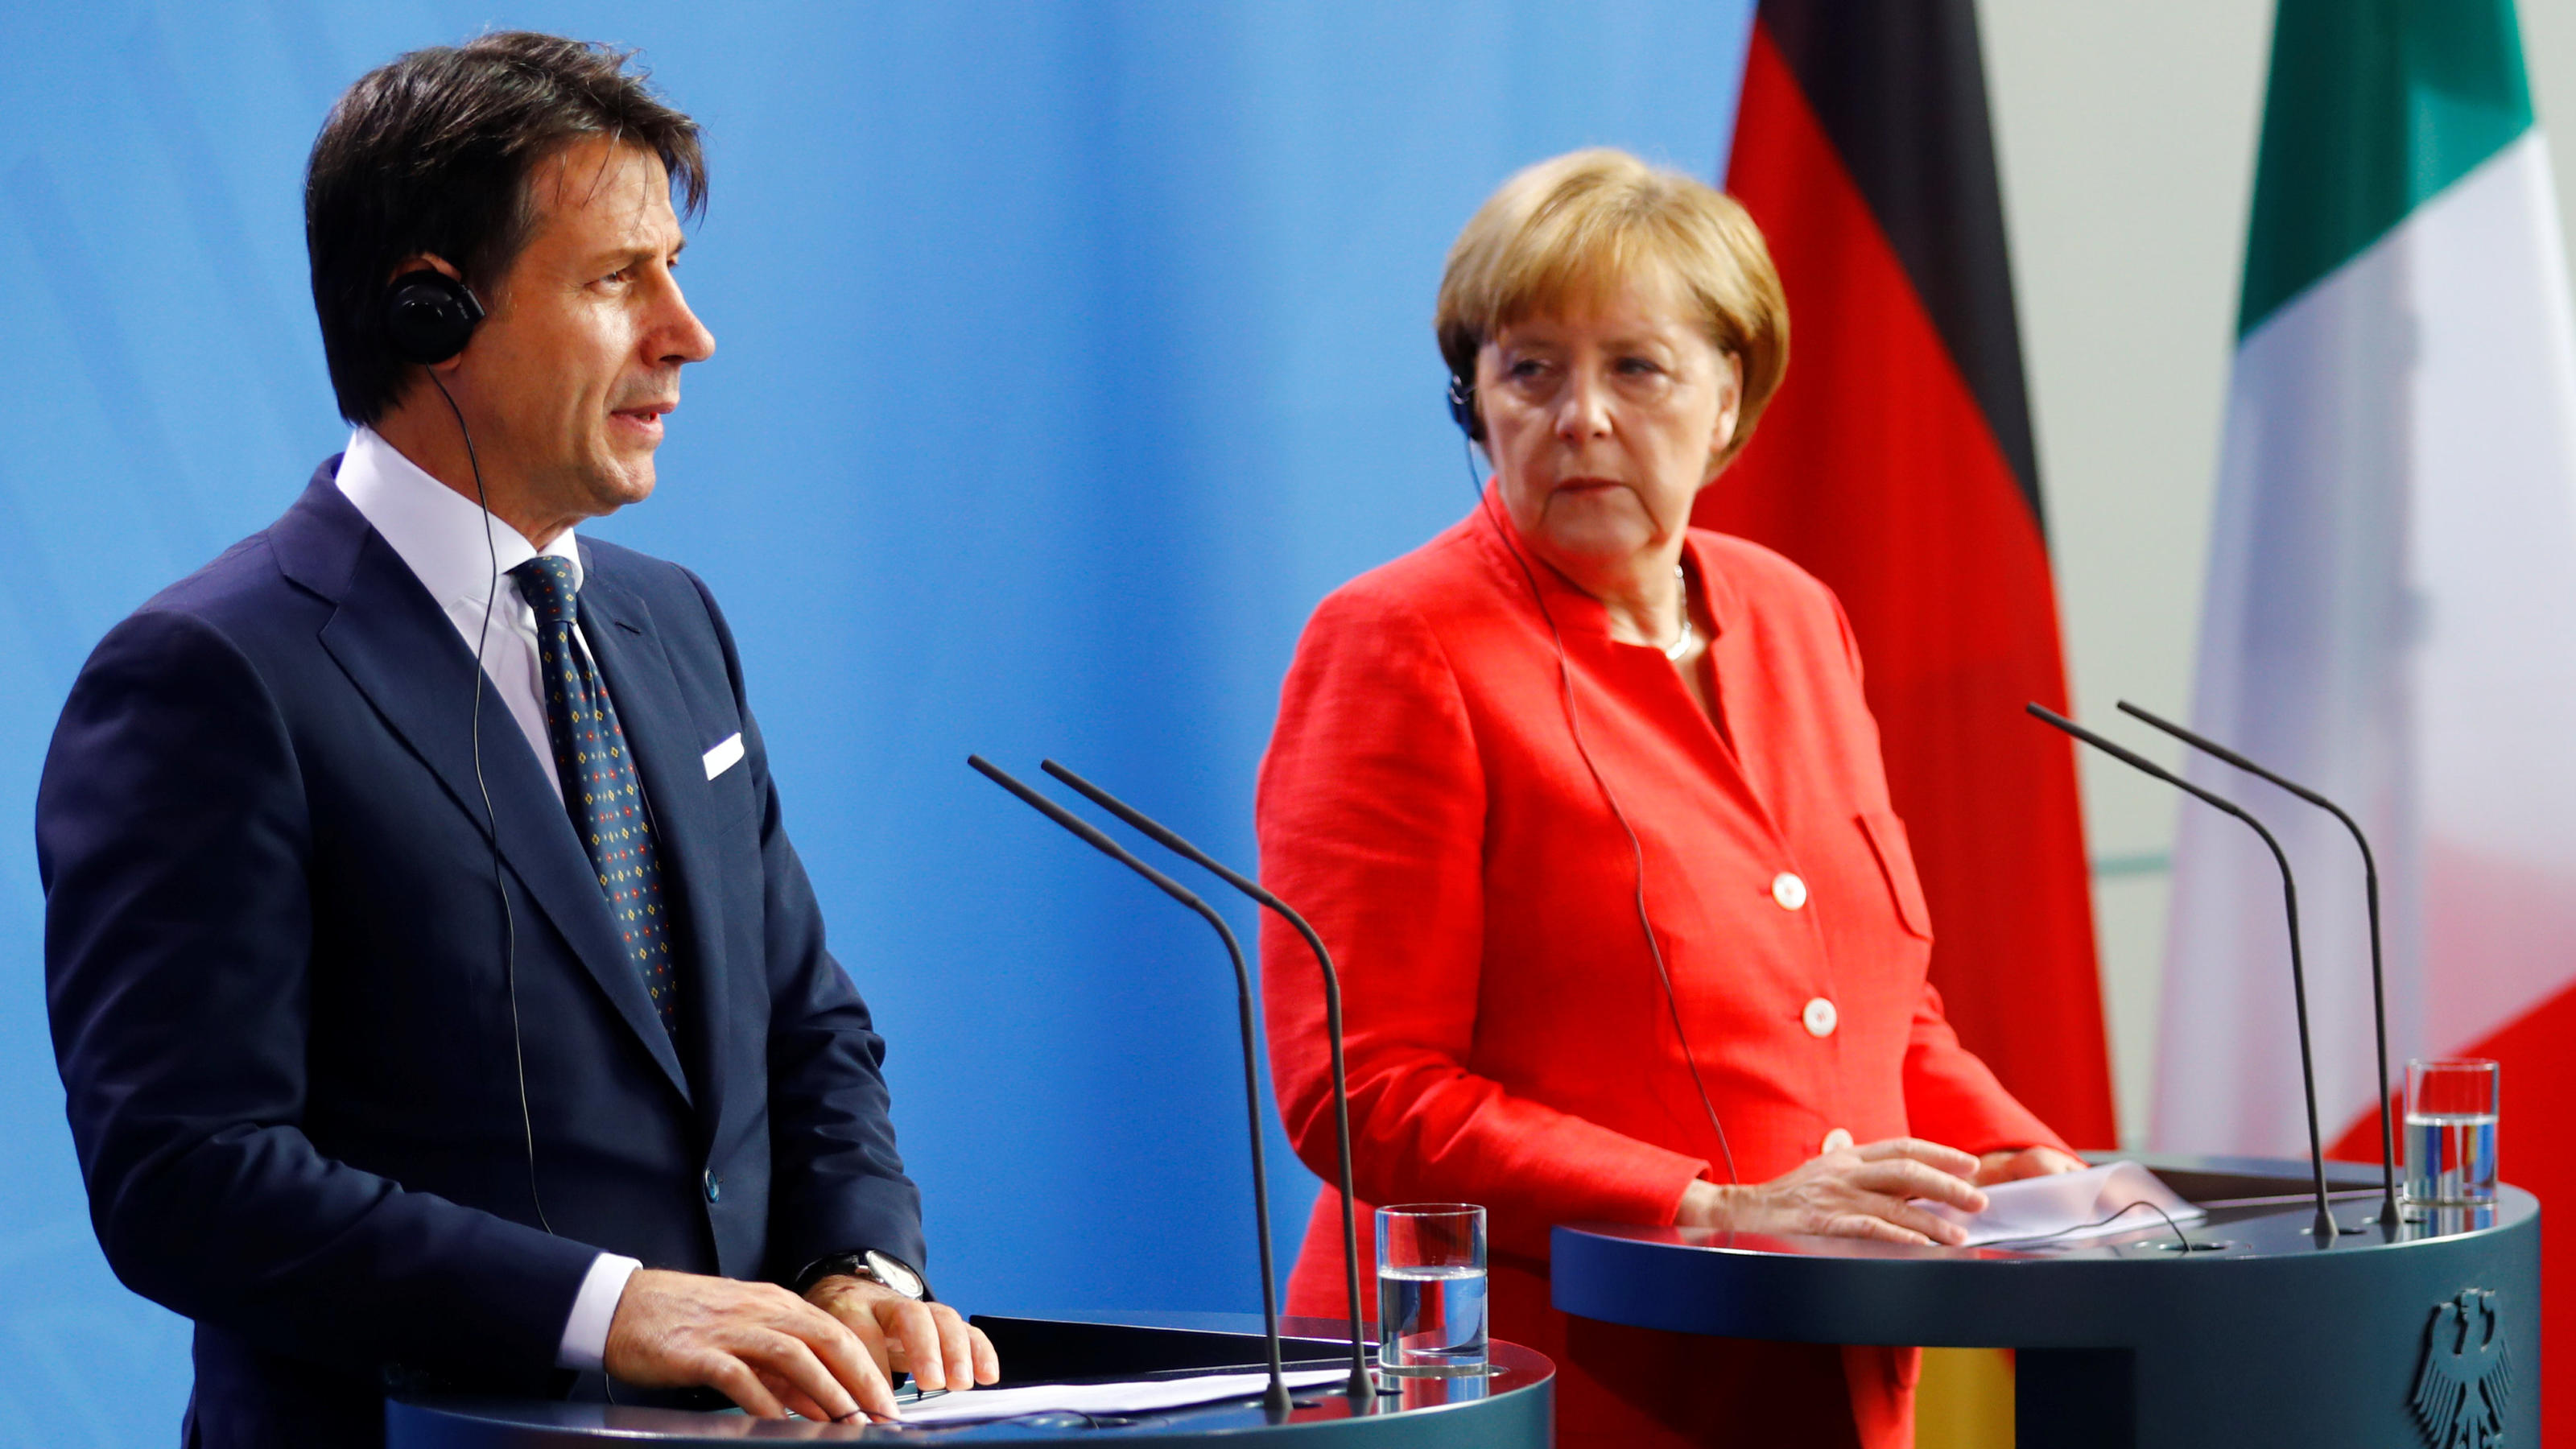 German Chancellor Angela Merkel and Italian Prime Minister Giuseppe Conte hold a news conference at the chancellery in Berlin, Germany, June 18, 2018. REUTERS/Hannibal Hanschke